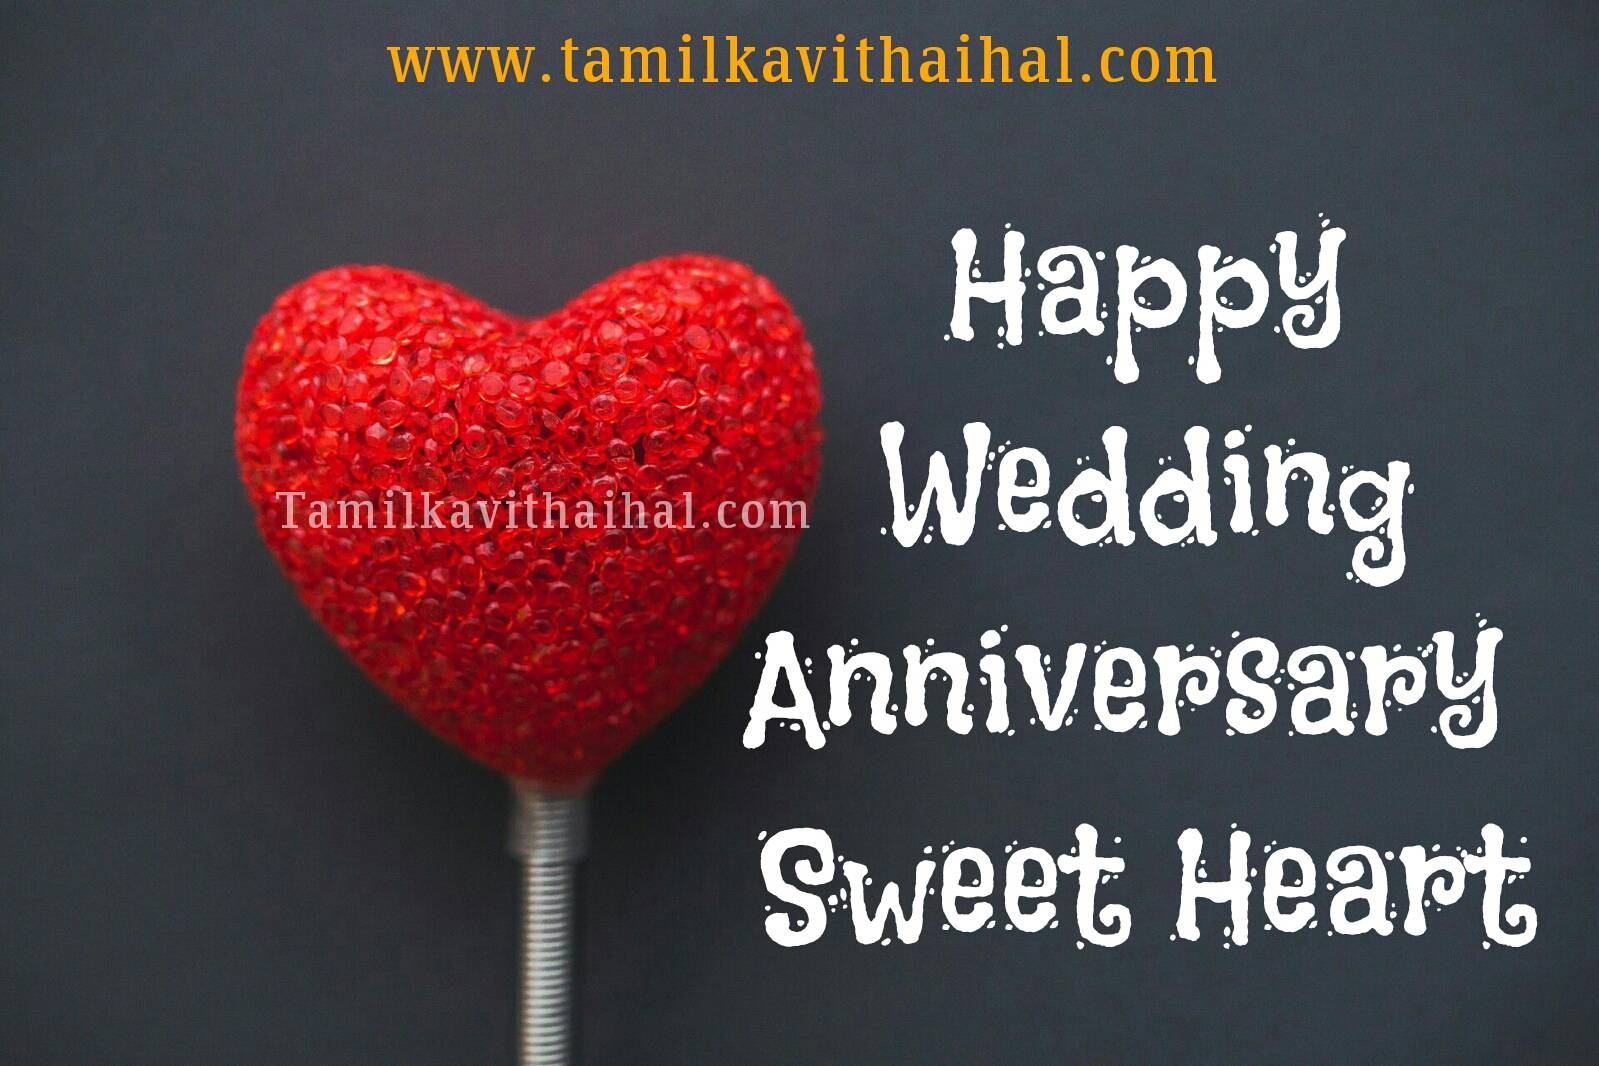 Thirumanam tamil kavithai wedding wishes manam malai mapillai.